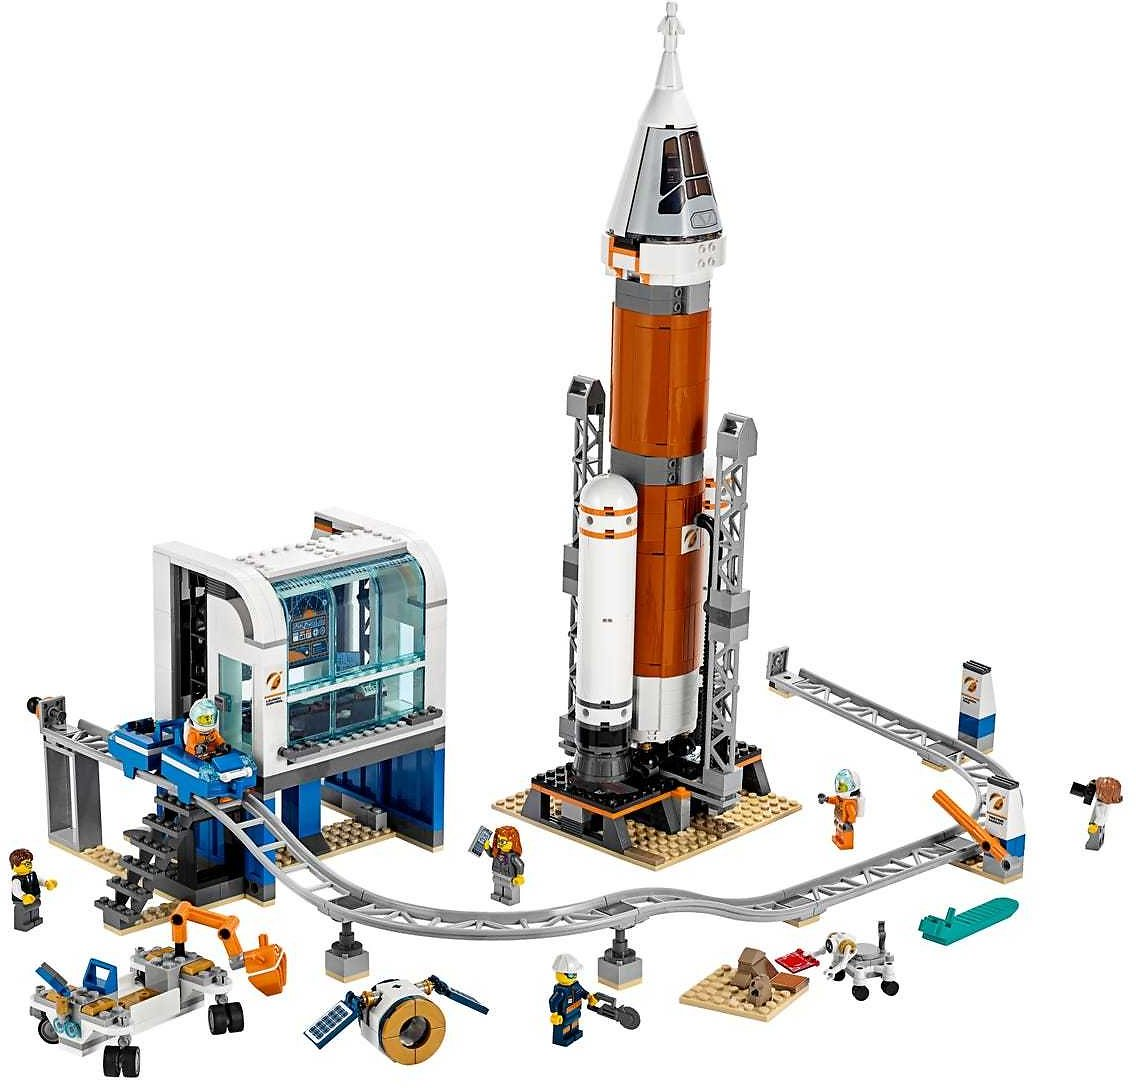 Deep Space Rocket and Launch Control 60228 | City | Buy Online At The Official LEGO® Shop US